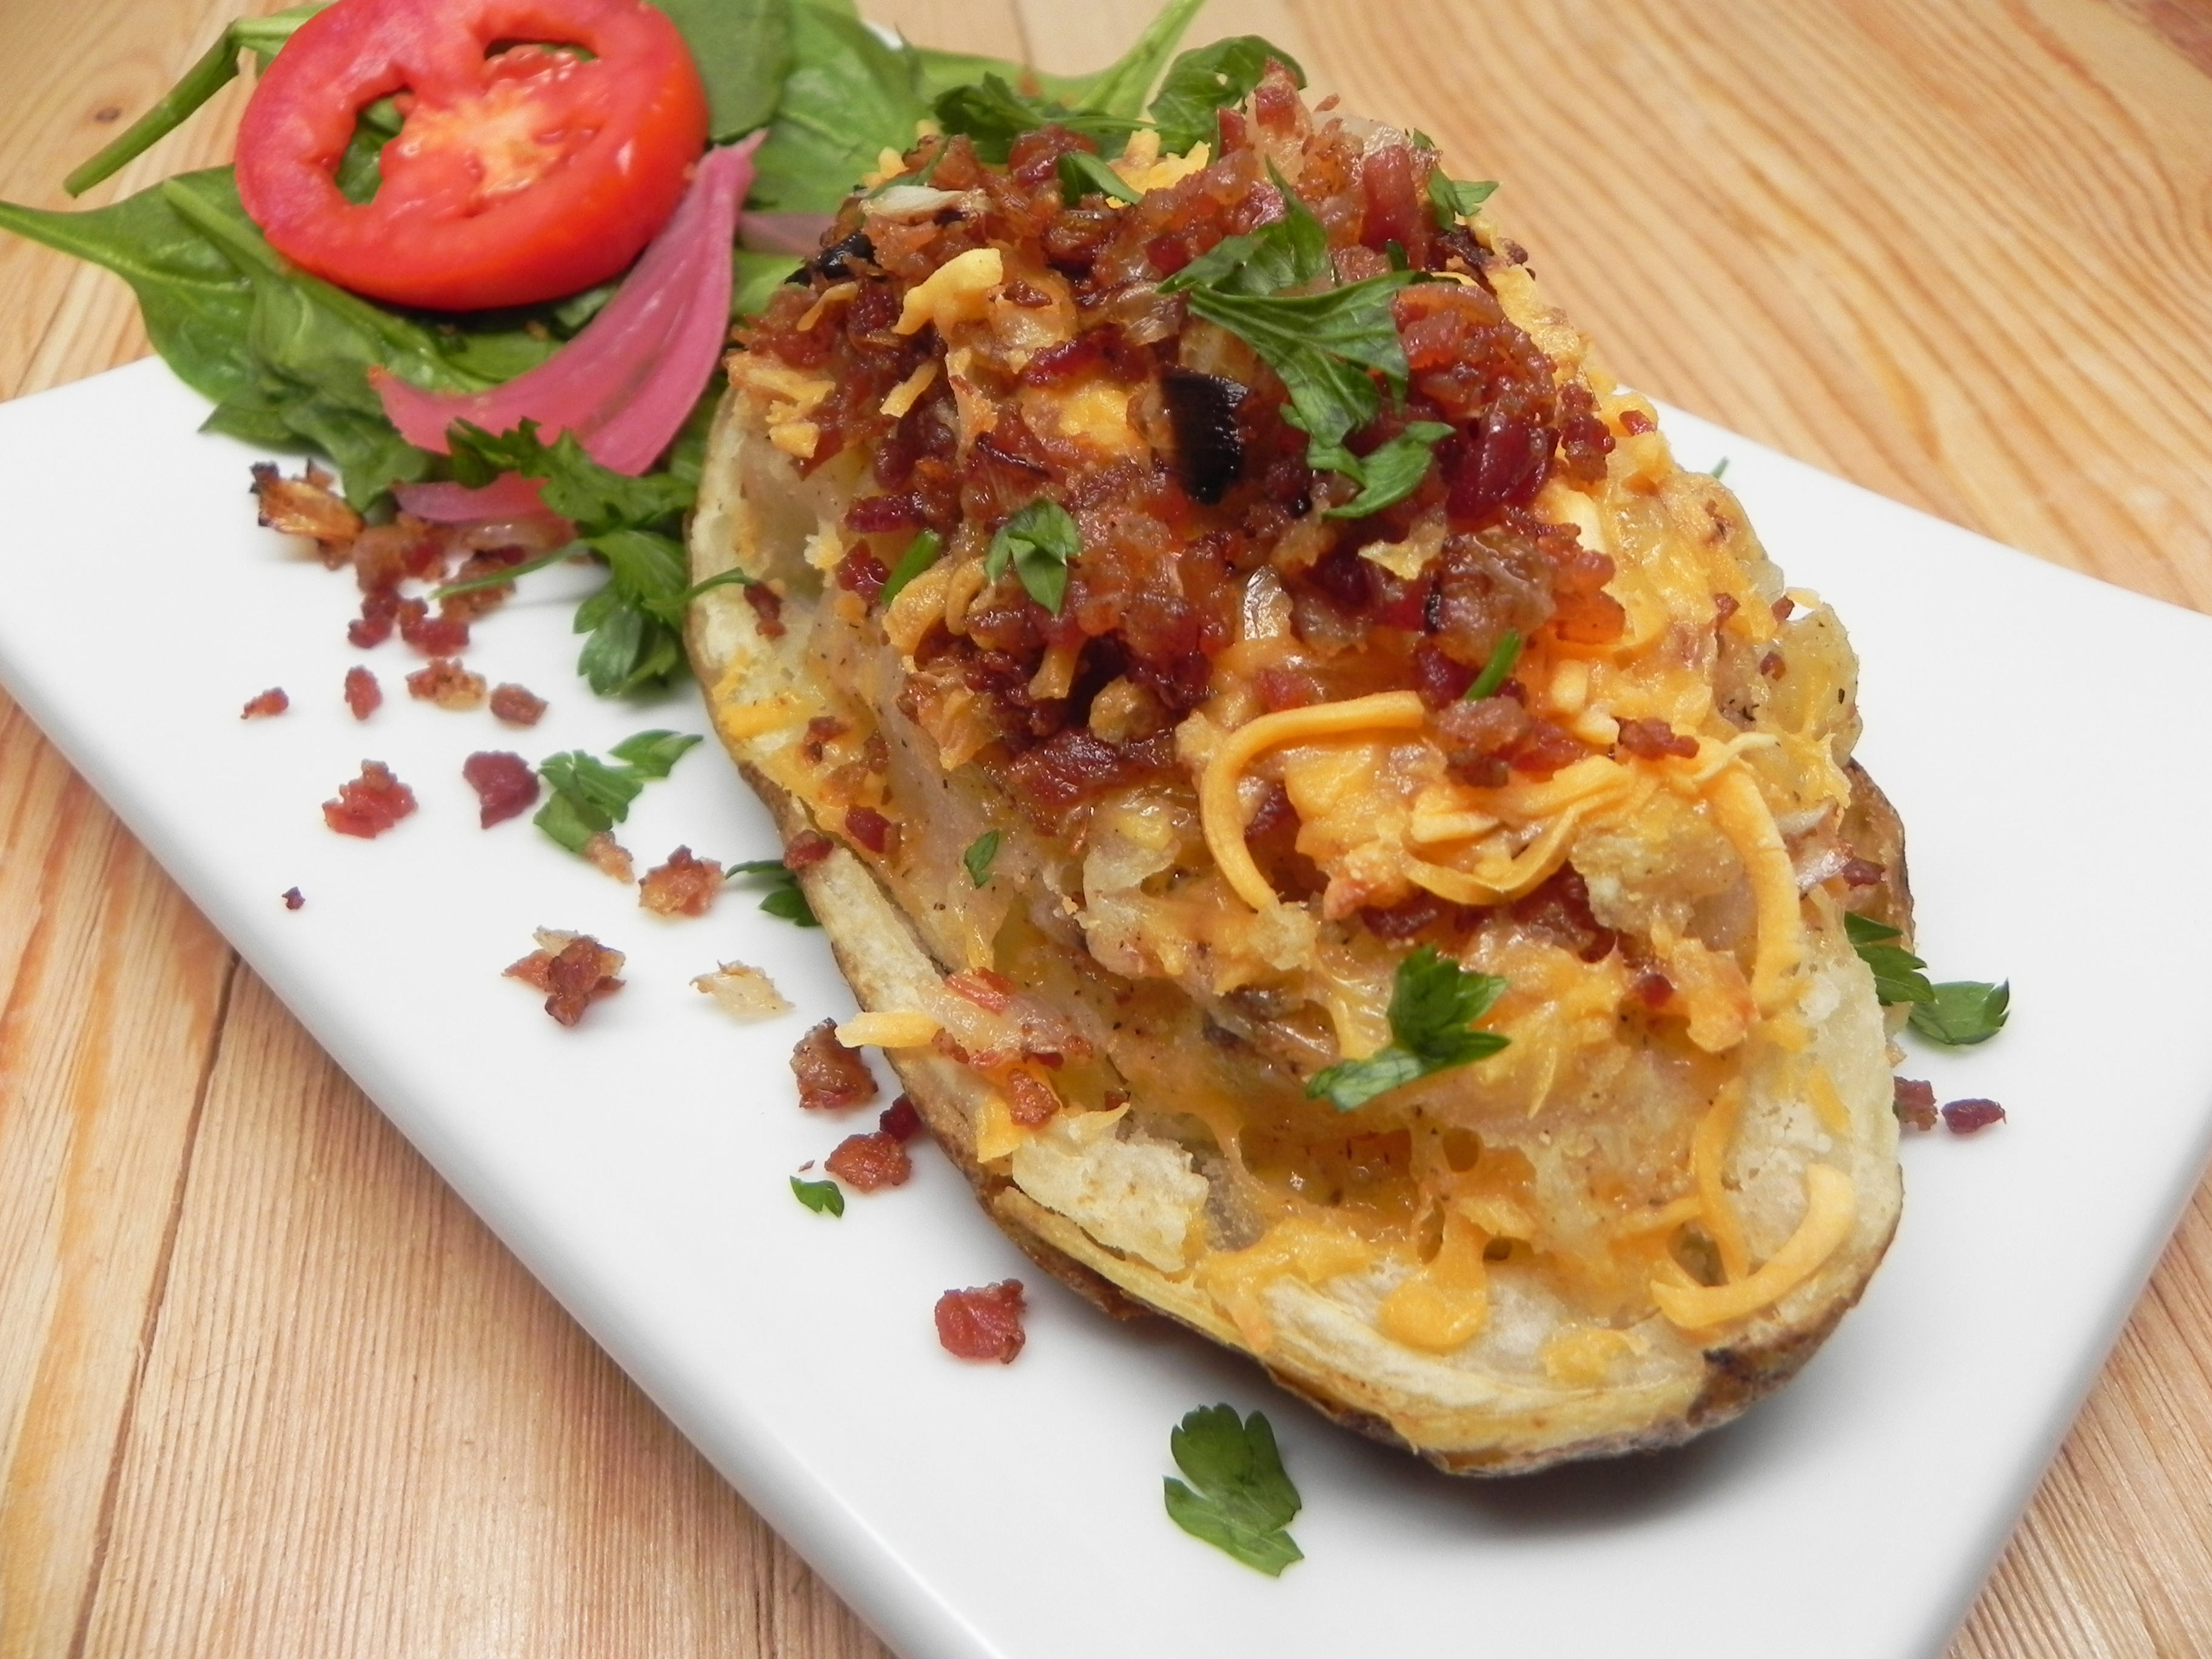 Stuffed Air Fryer Potatoes